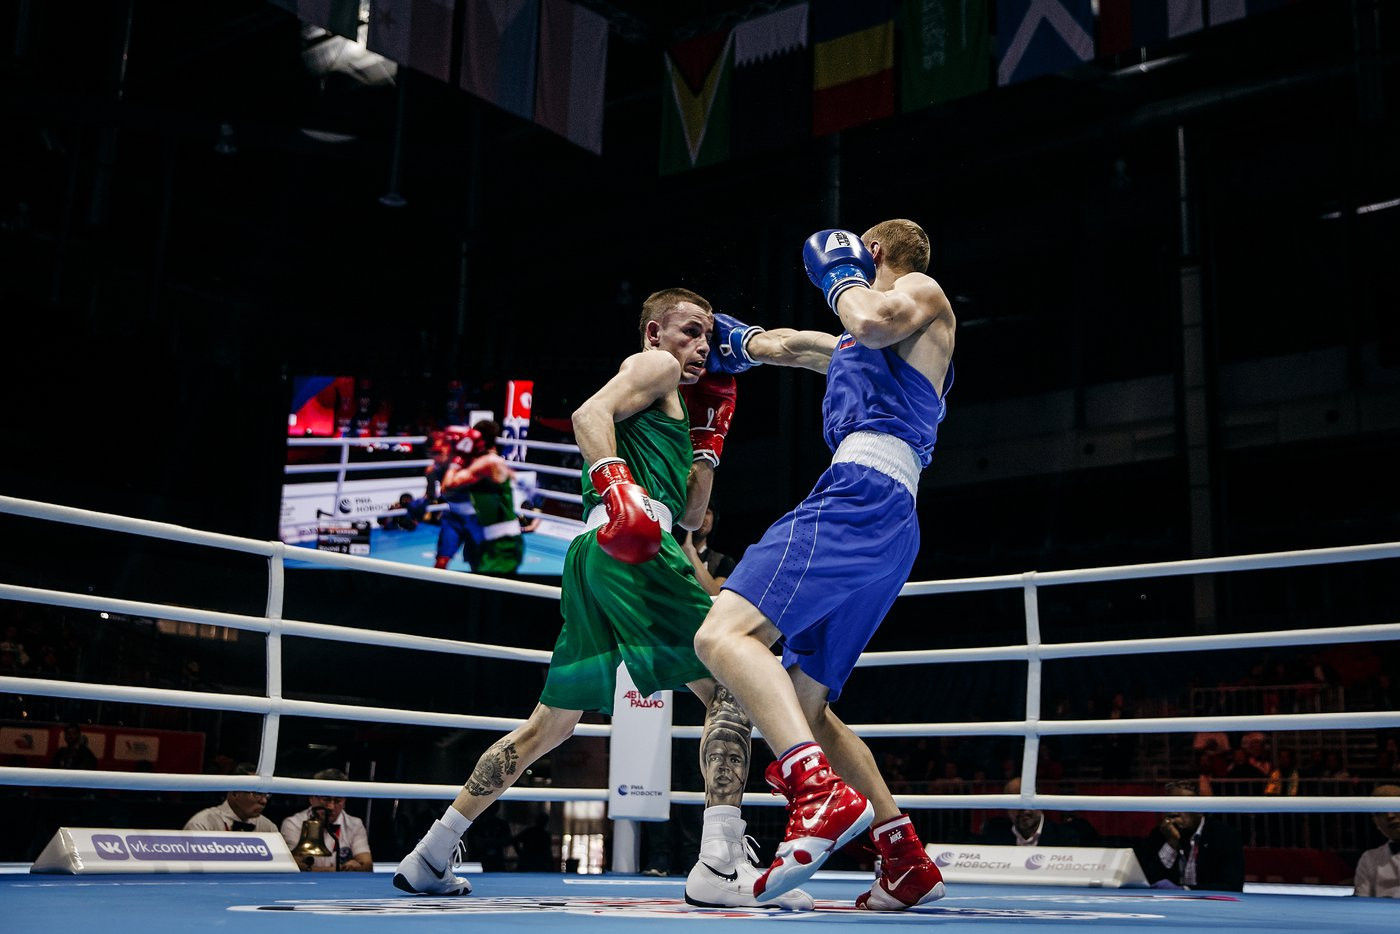 Another victory went to Russia when Ilia Popov fought Australia's Harry Garside ©Yekaterinburg 2019